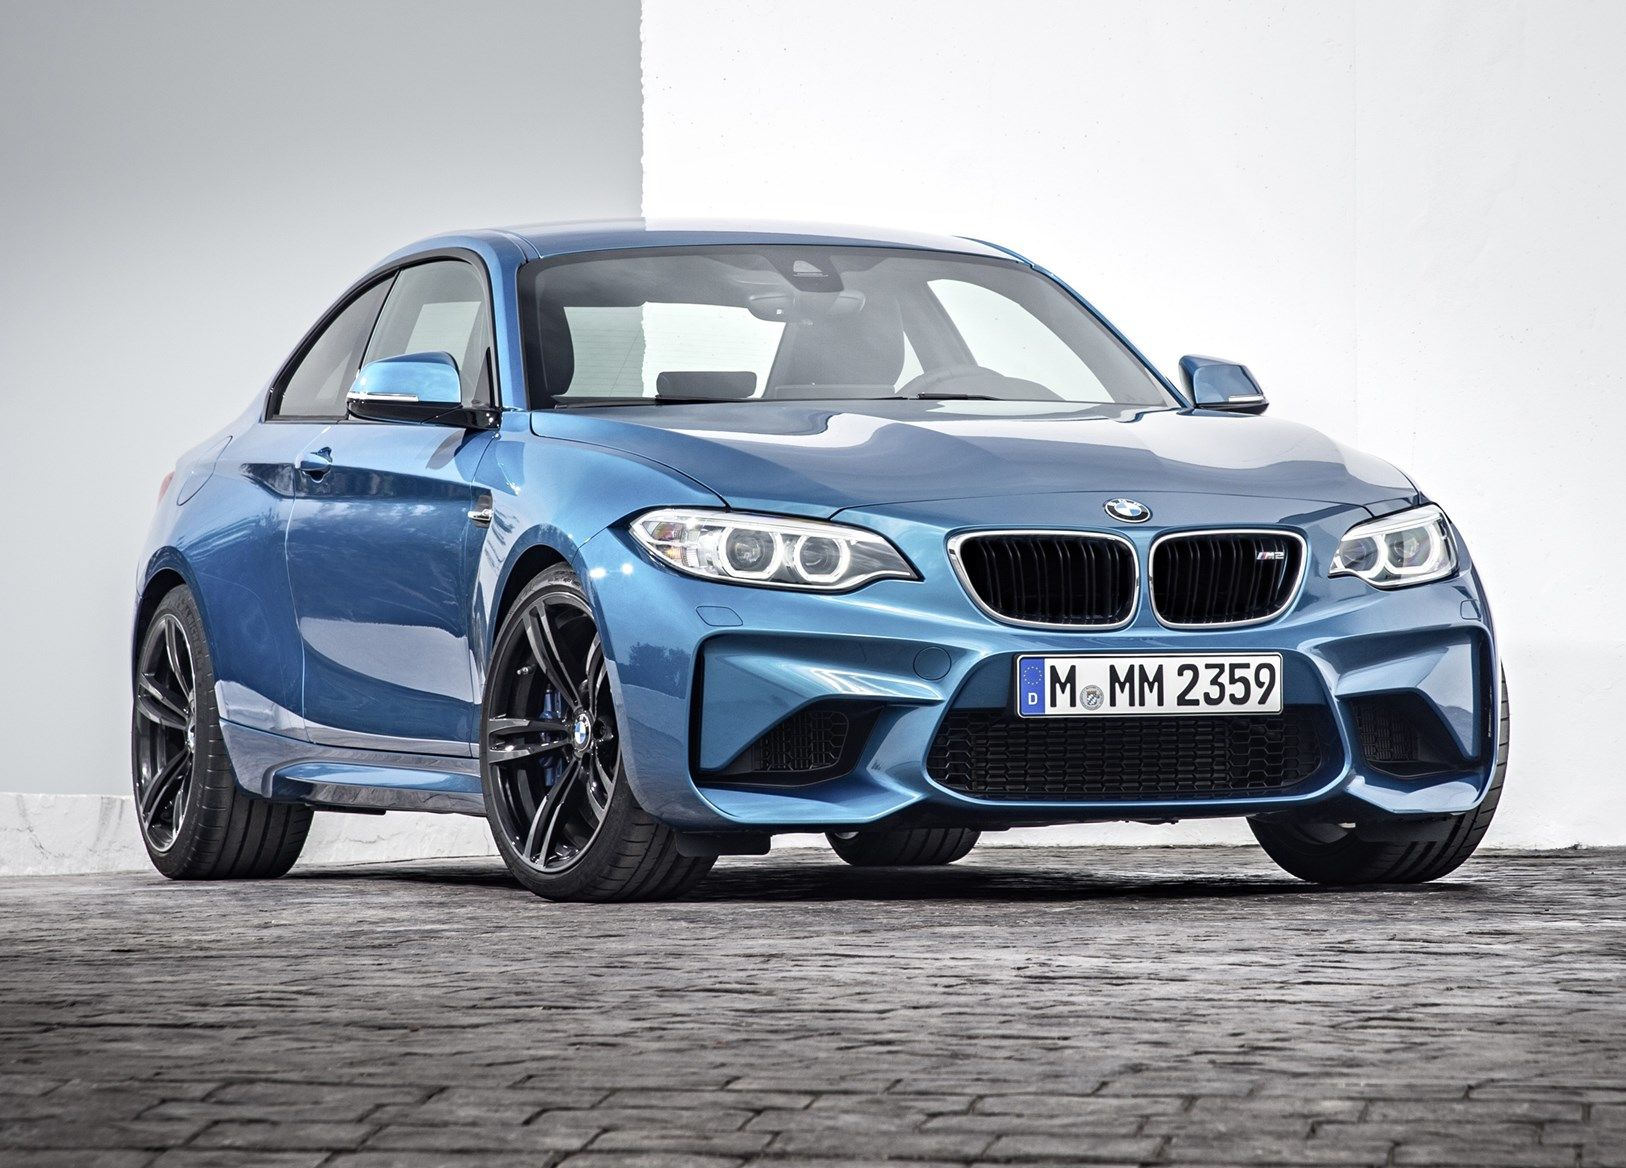 Bmw S M Division Goes Back To Its Roots With The Sublime M2 Coupe